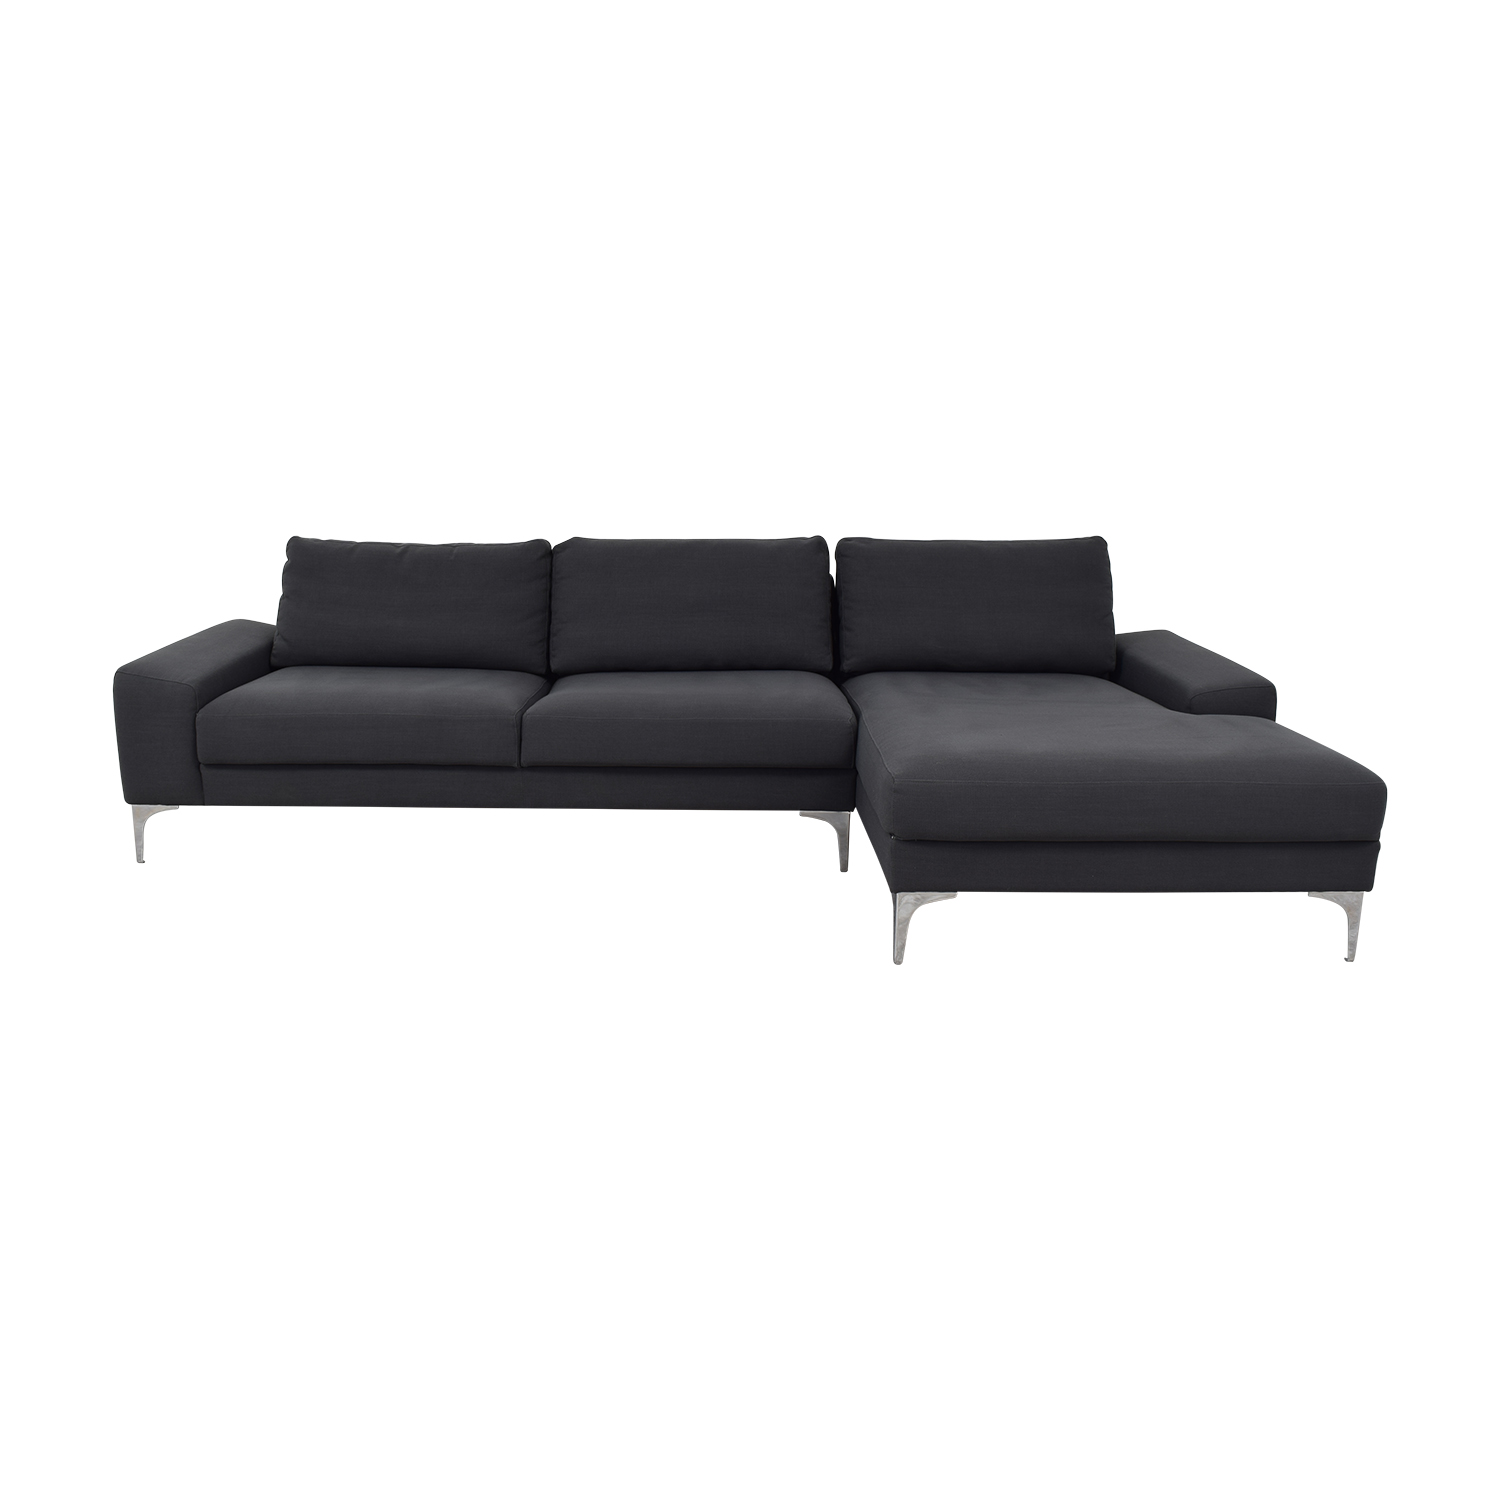 Industry West Industry West Sectional Sofa on sale